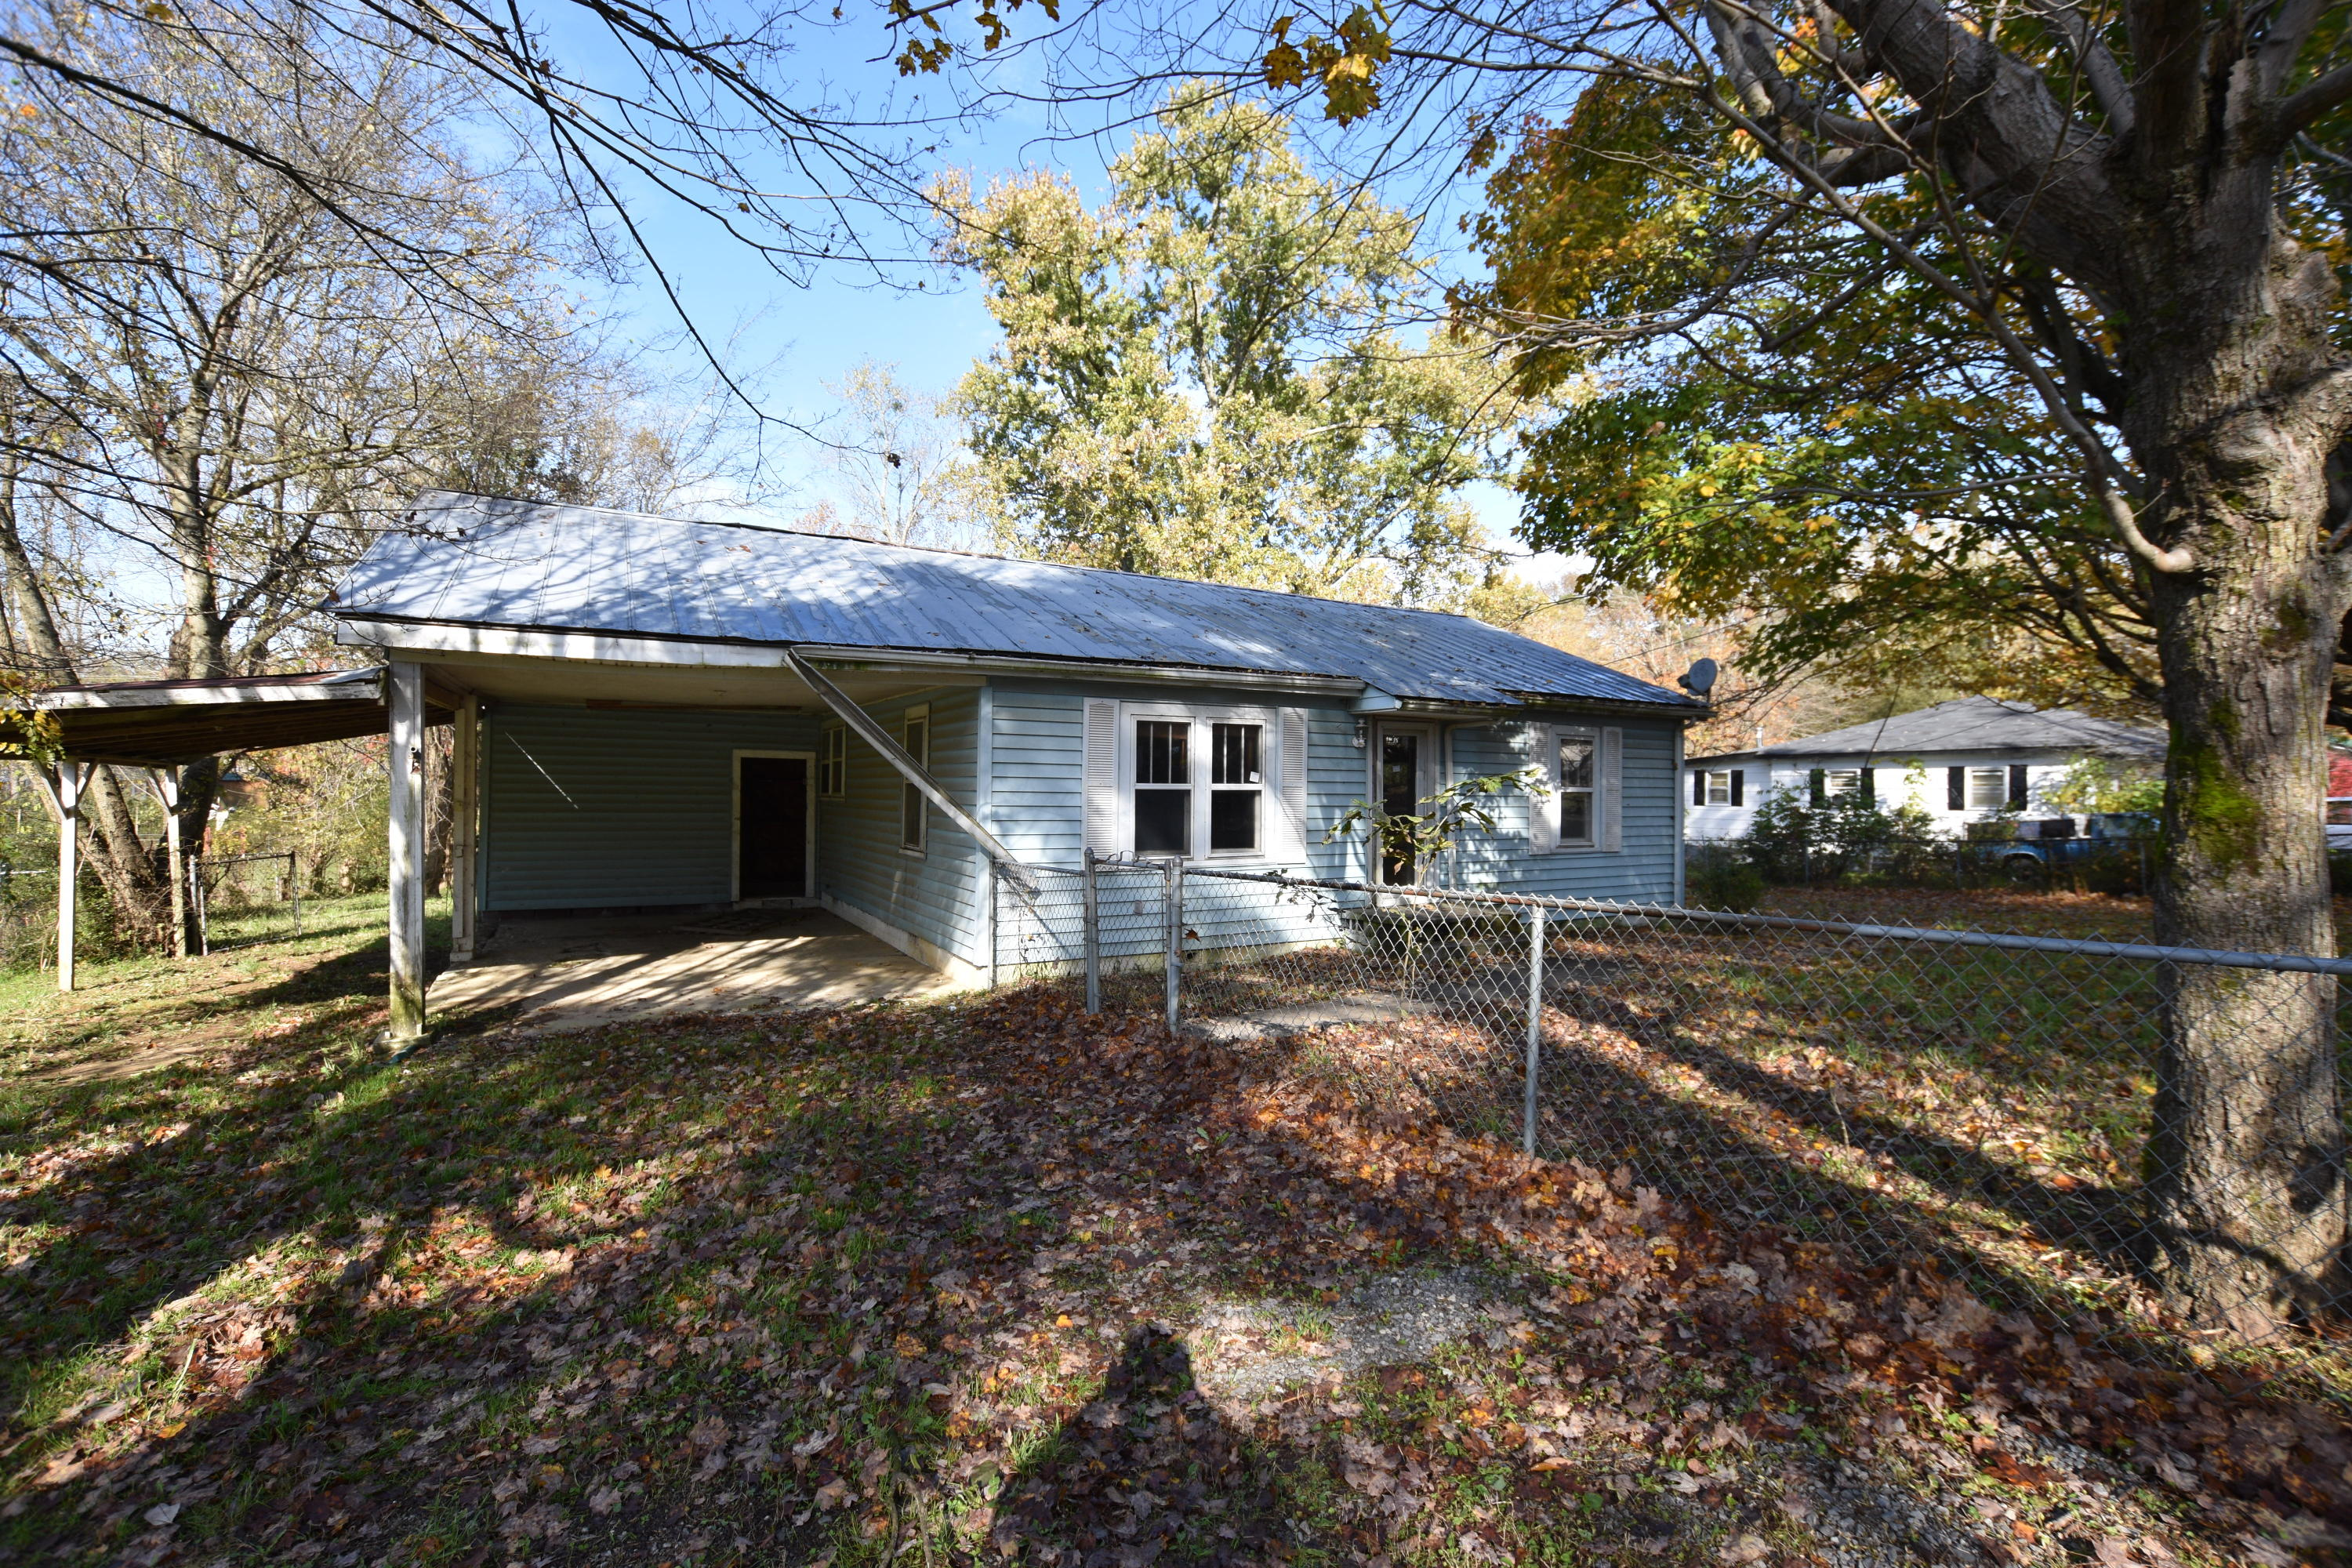 225 Cherokee Dr, Cleveland, TN 37323